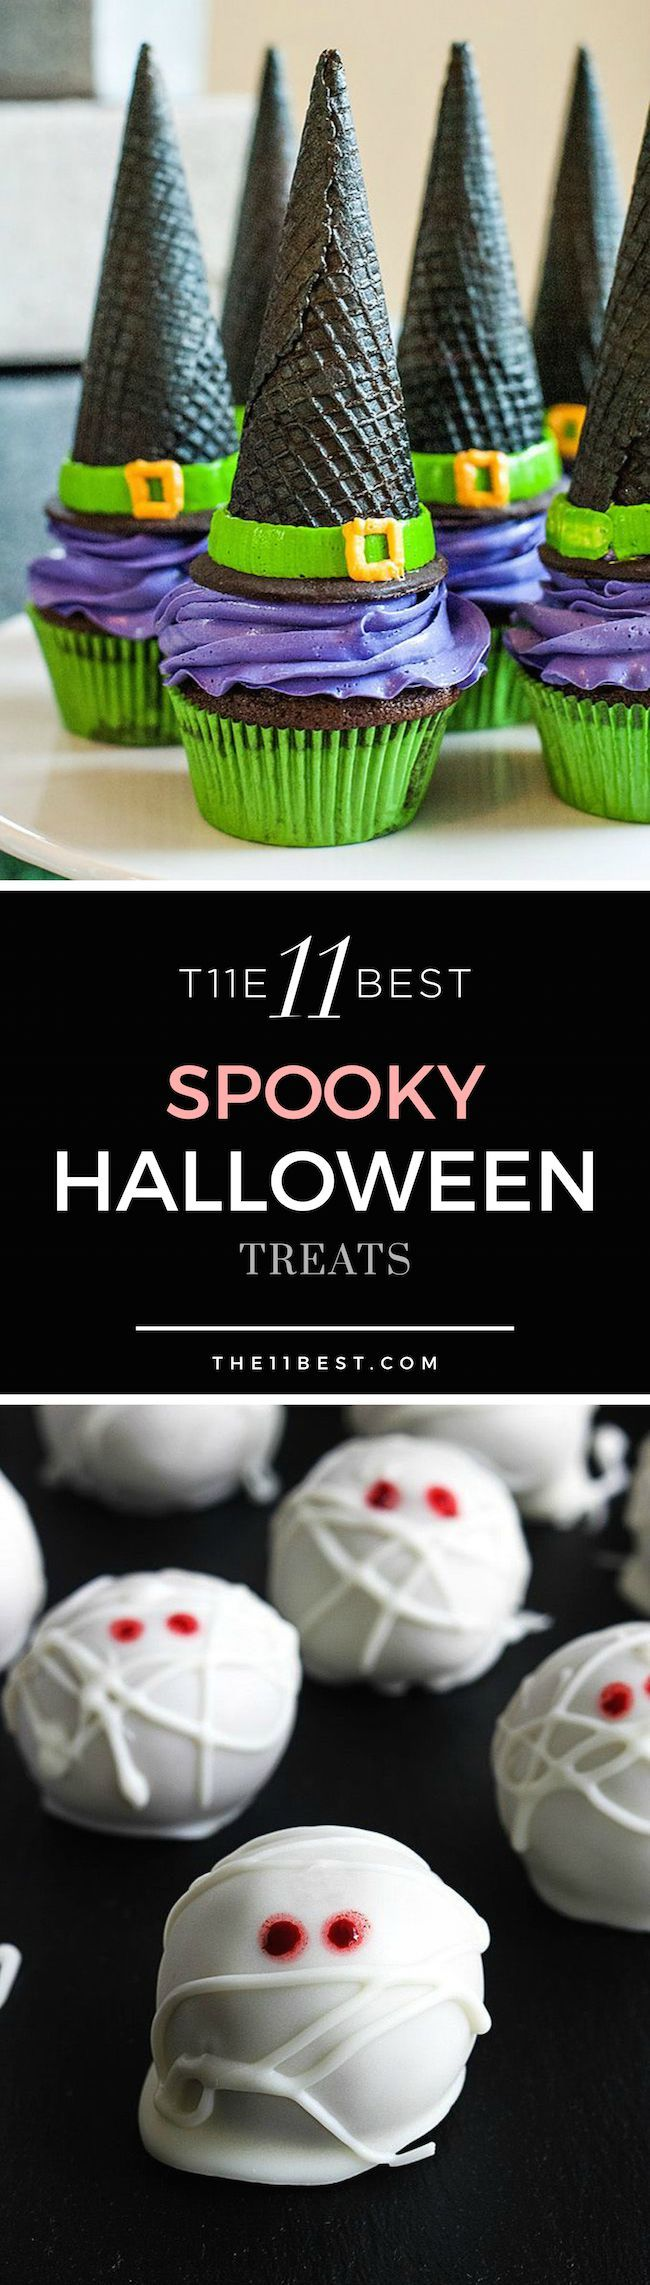 691 best Spooks, Spices,  Sparkles images on Pinterest Halloween - cool homemade halloween decorations